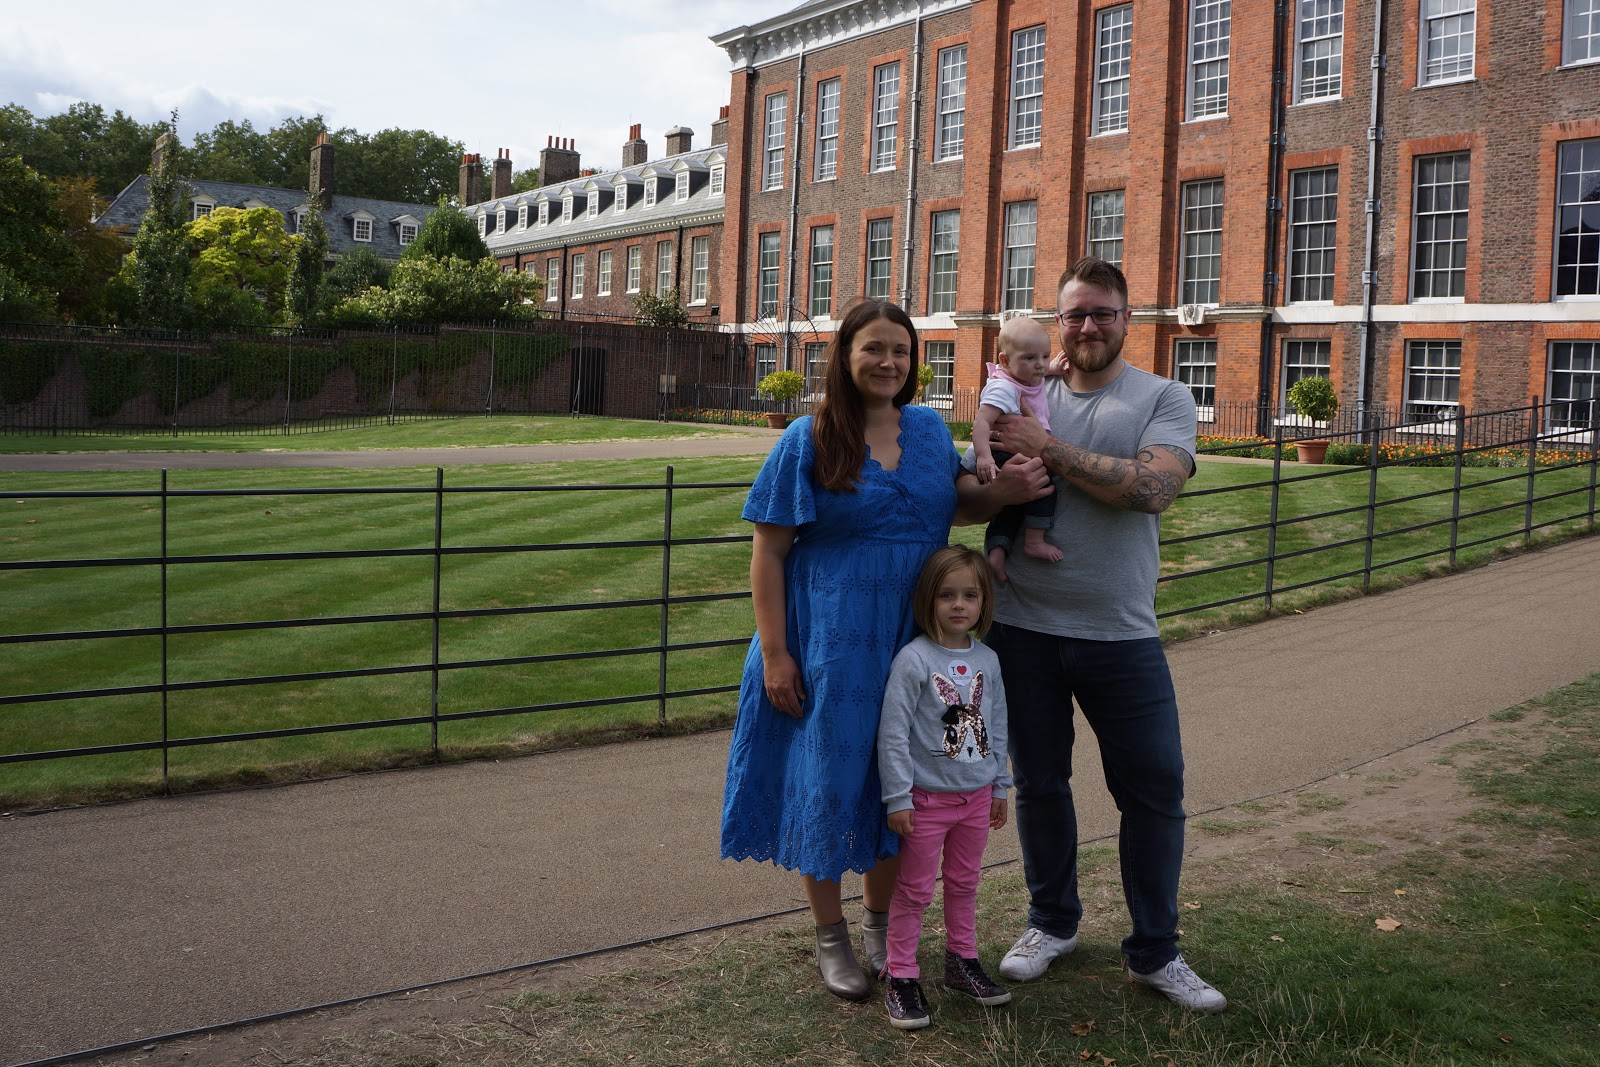 family photo in front of kensington palace